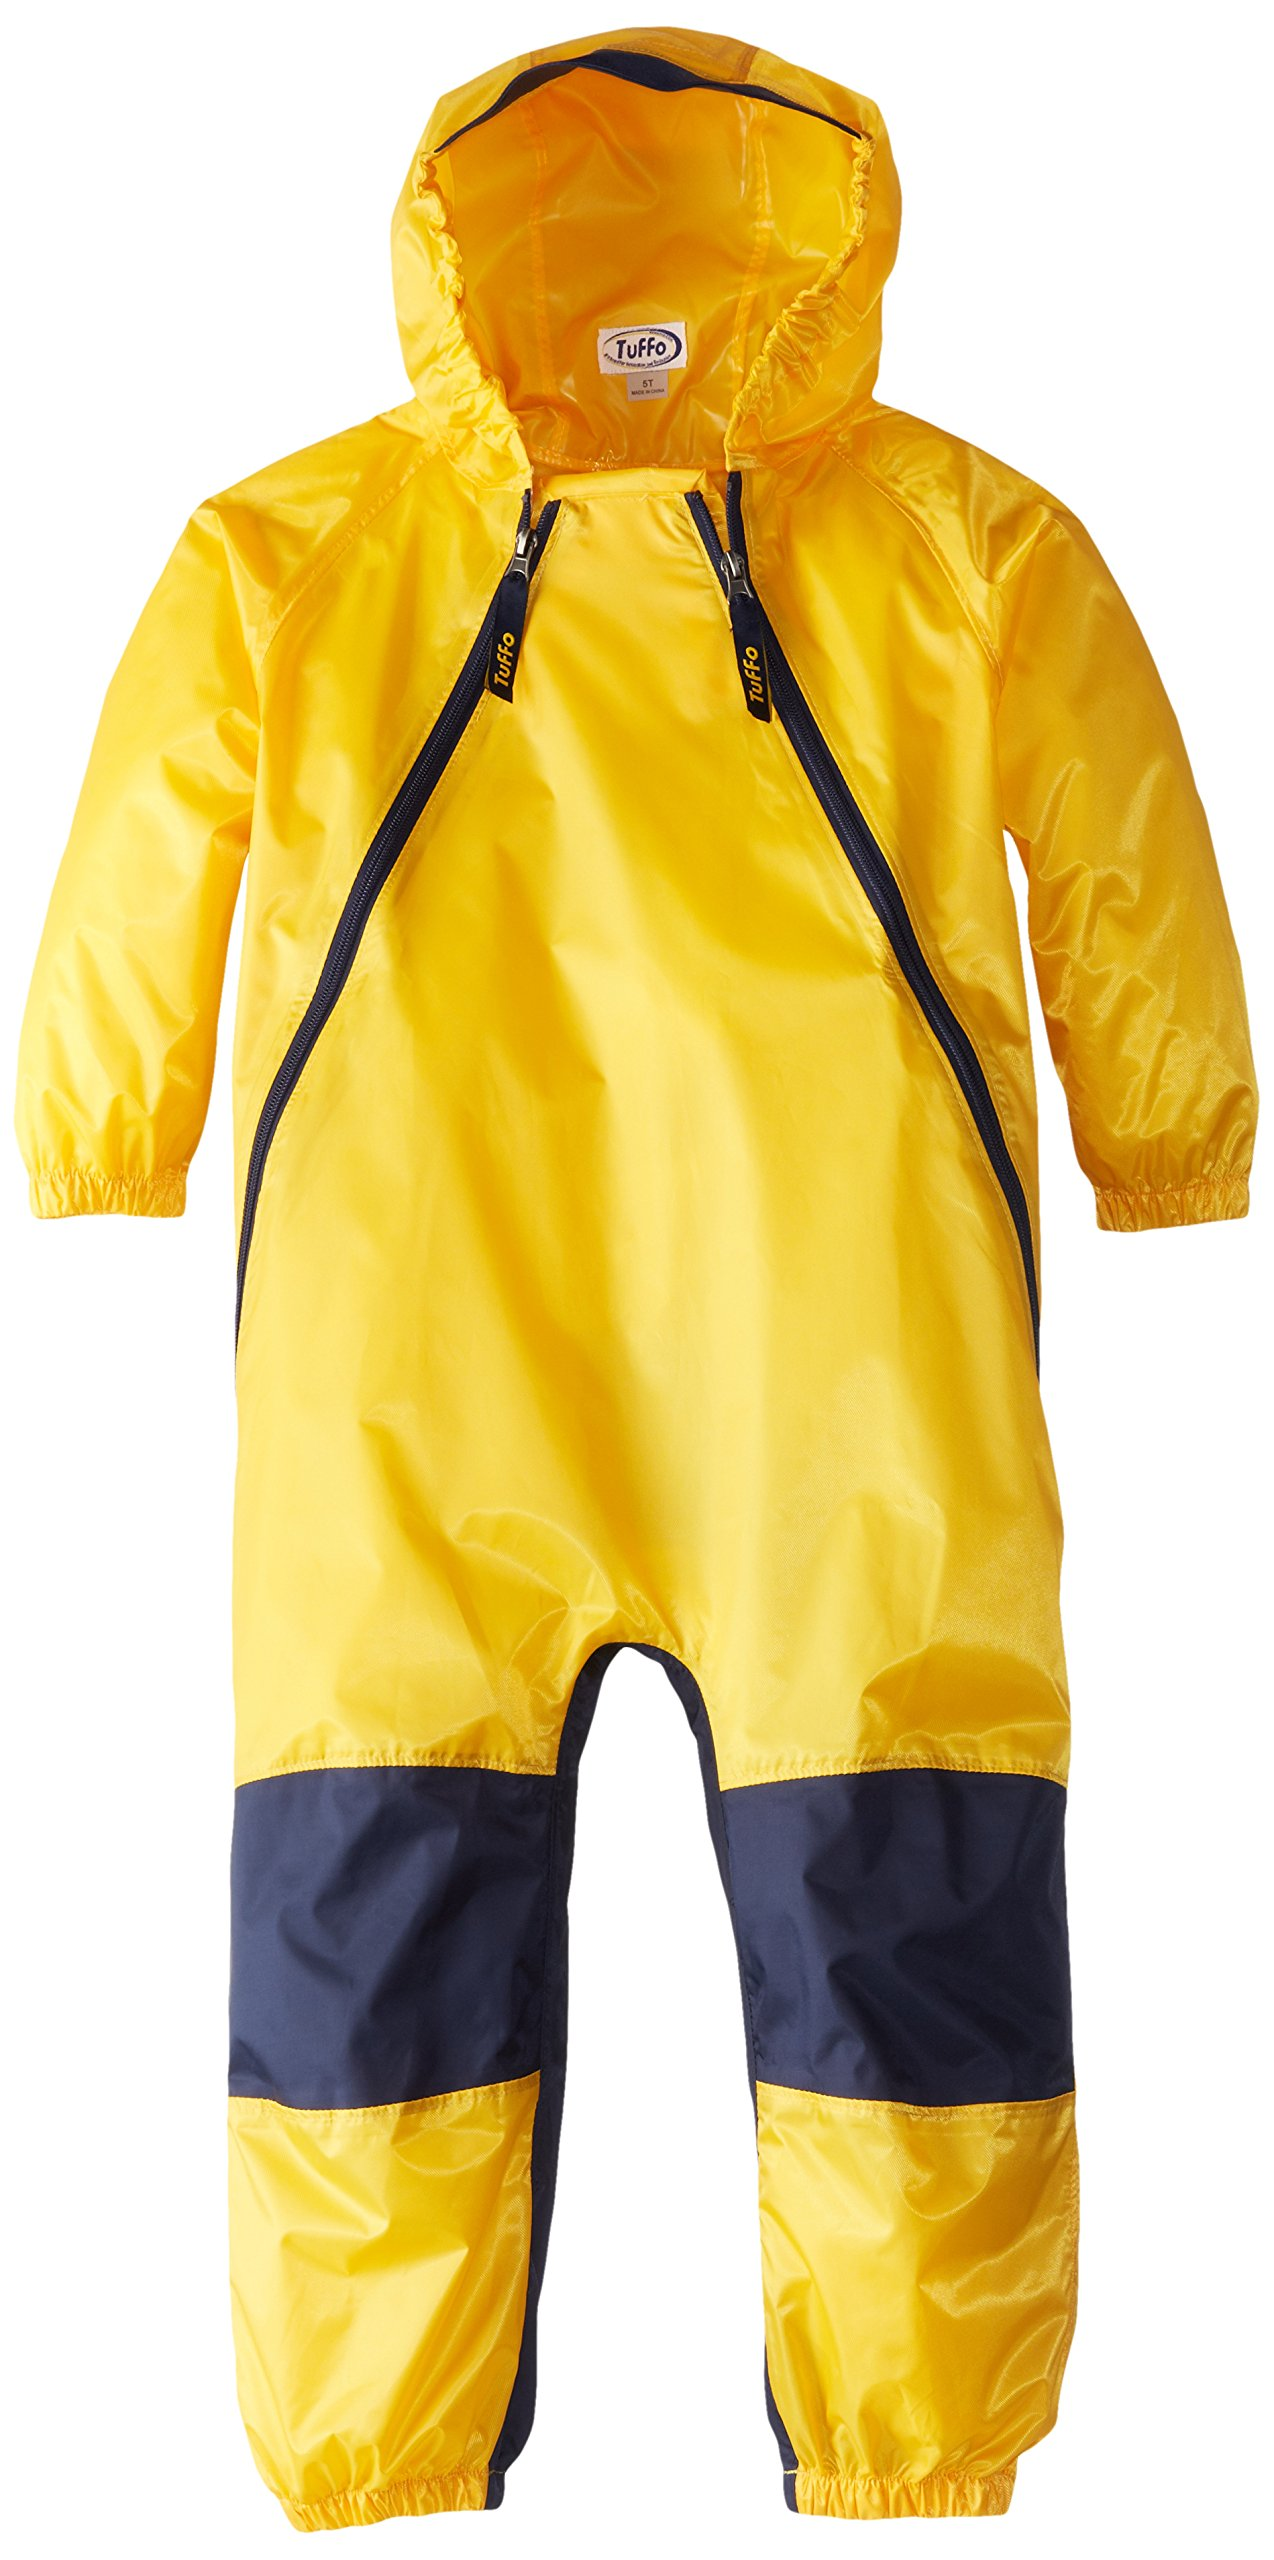 Tuffo Muddy Buddy Overalls (5T, yellow) by Tuffo